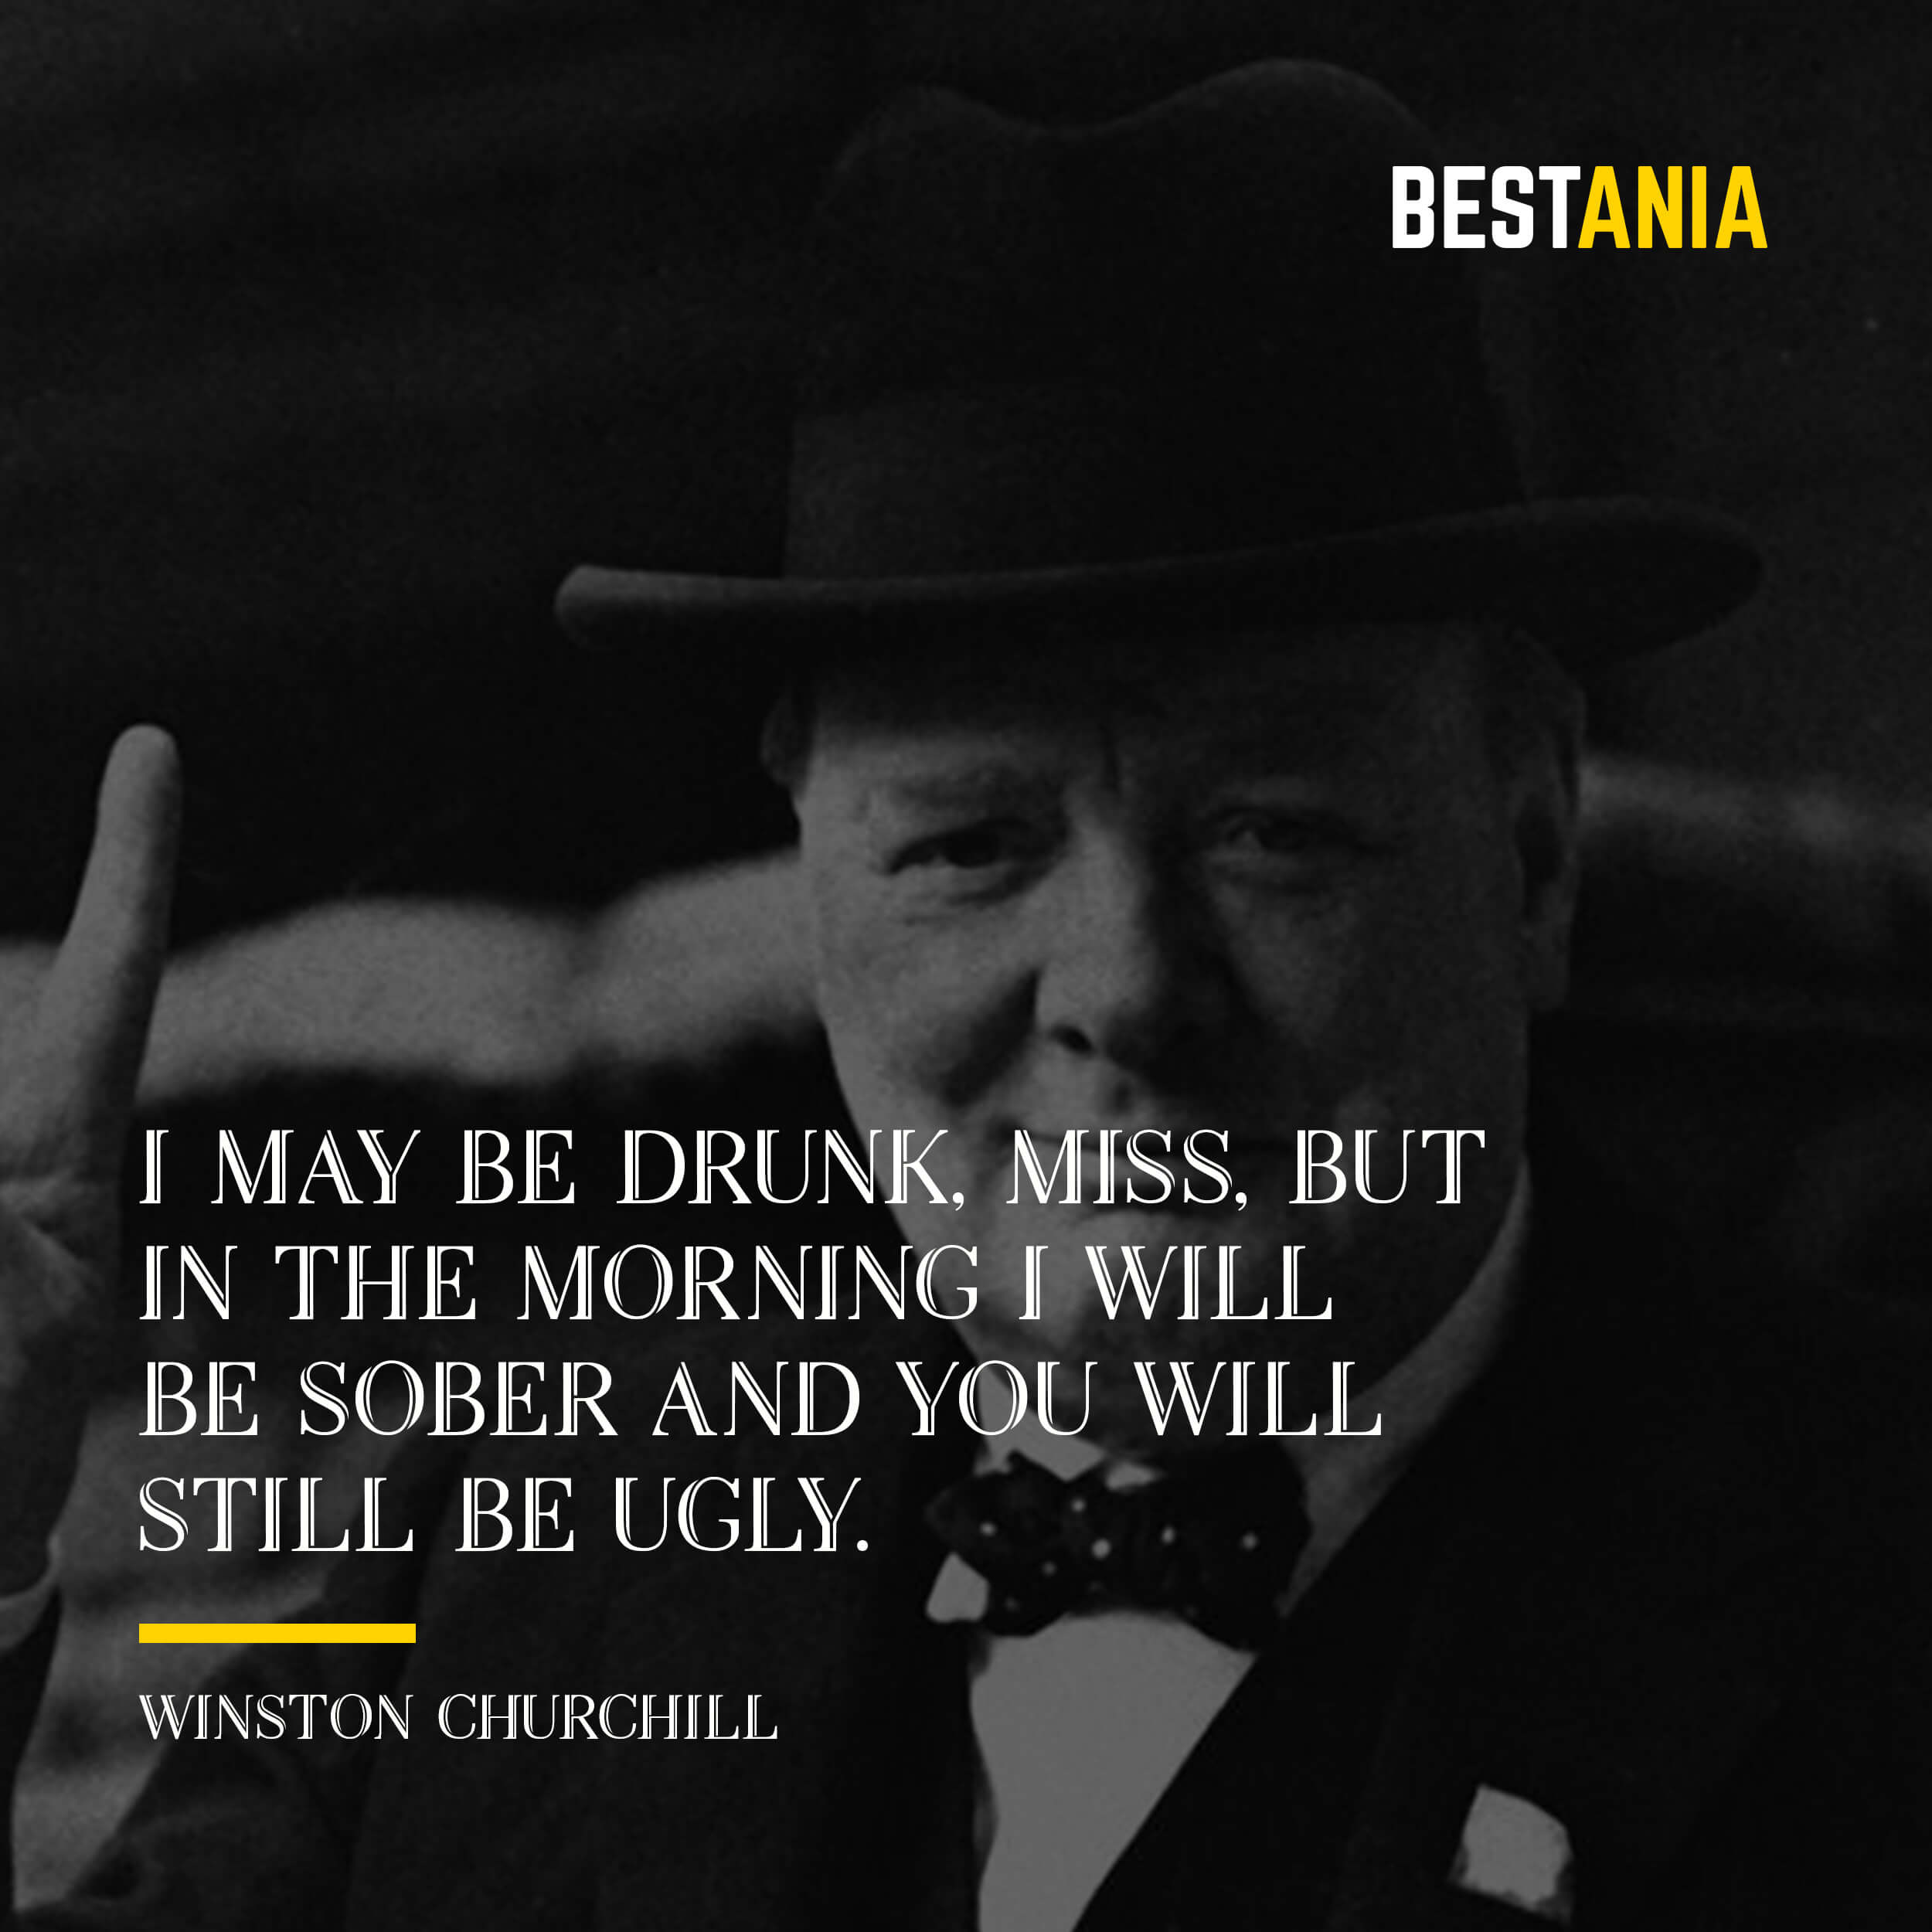 """I MAY BE DRUNK, MISS, BUT IN THE MORNING I WILL BE SOBER AND YOU WILL STILL BE UGLY.""  WINSTON CHURCHILL"